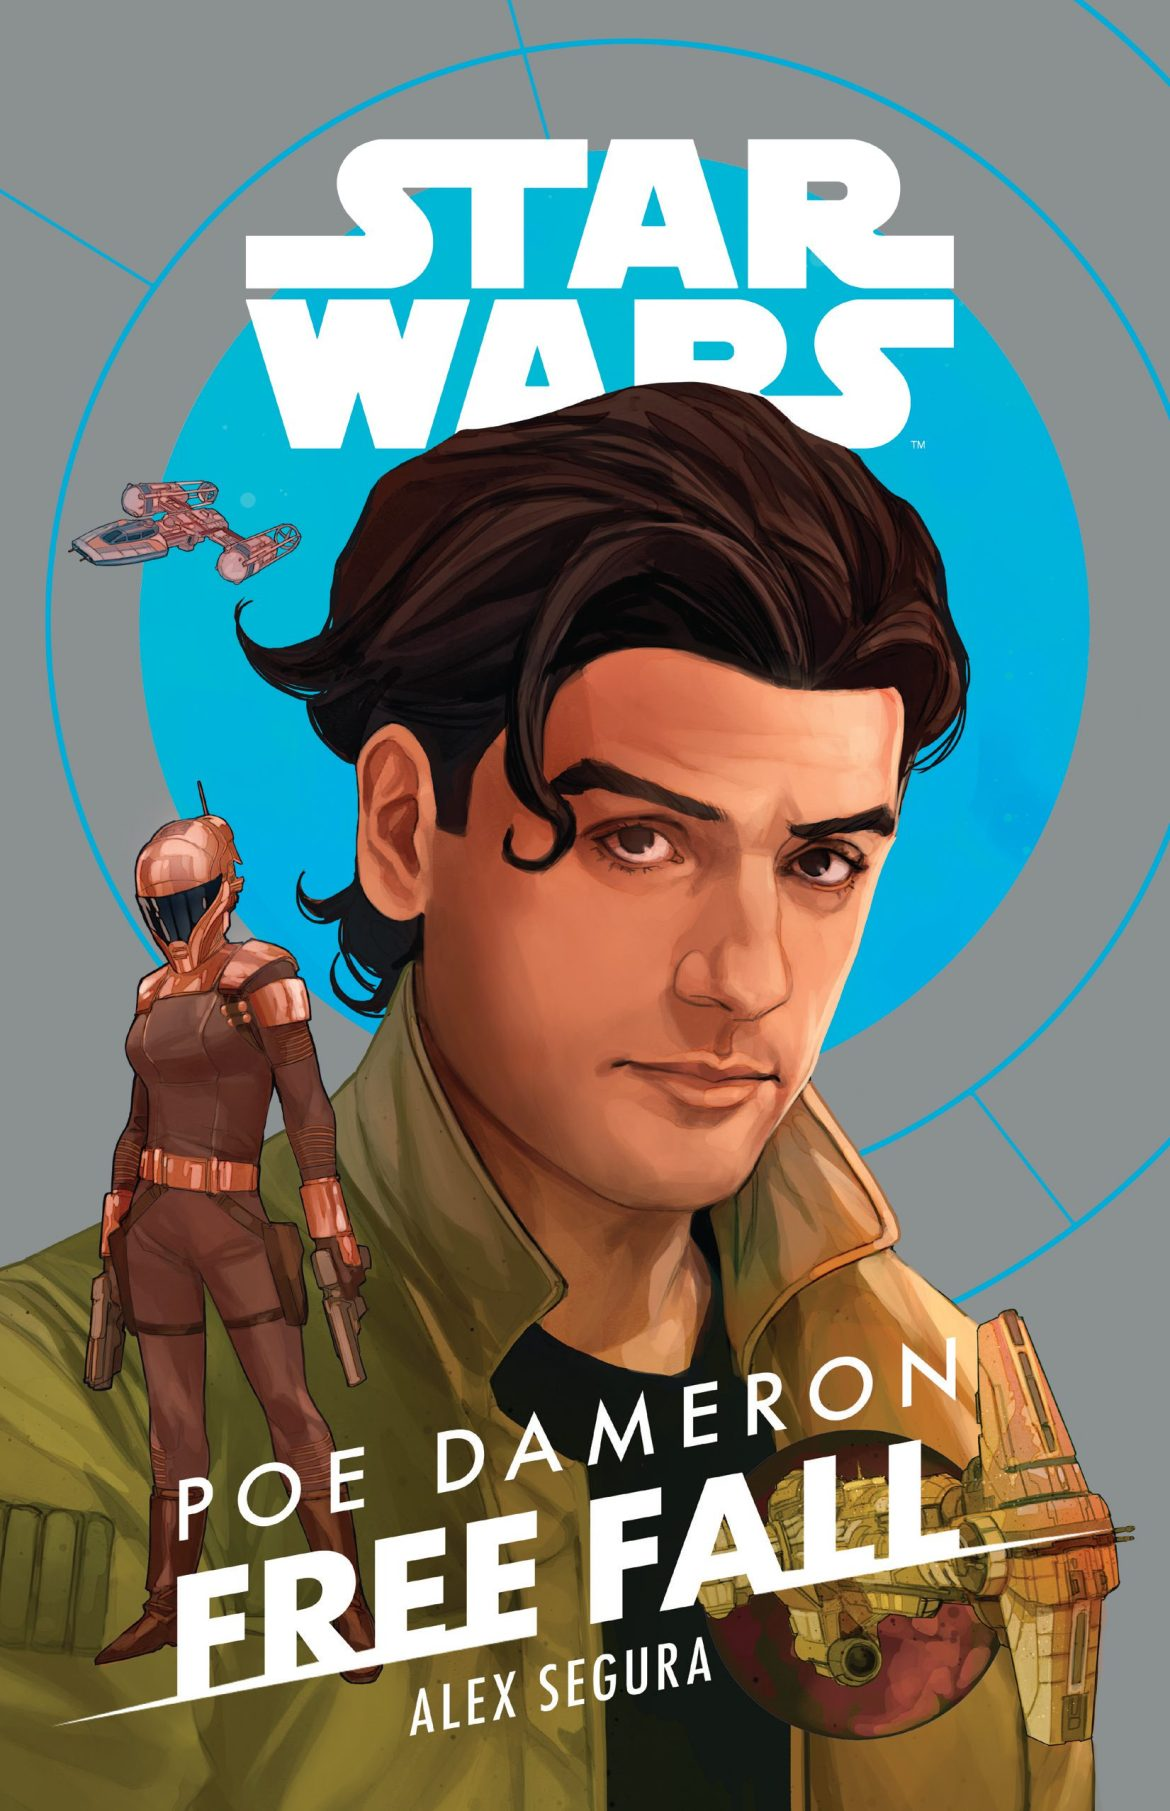 Read the first chapter of Star Wars: Poe Dameron – Free Fall, by Alex Segura